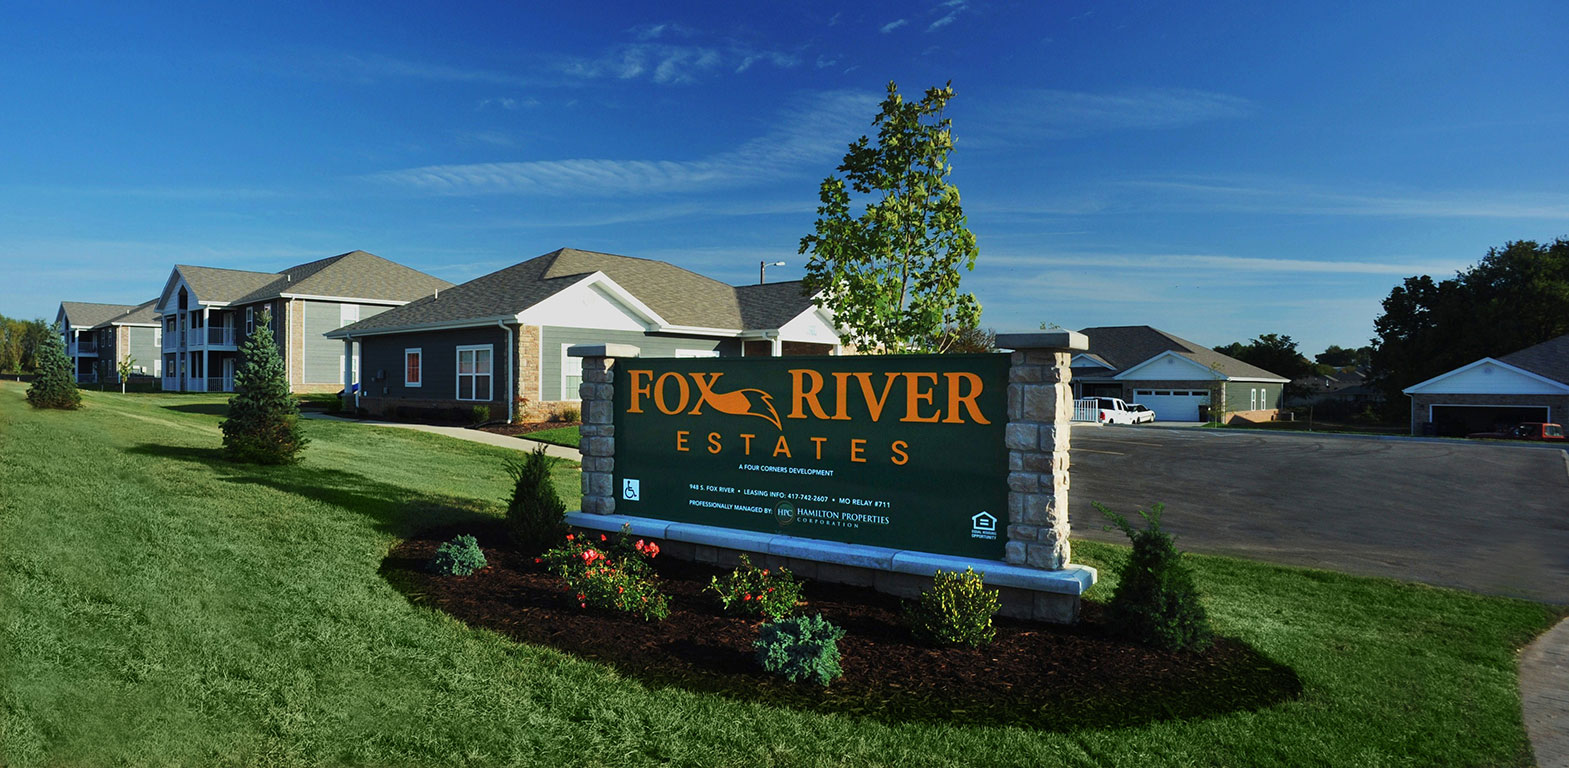 fox river essay Unlike most editing & proofreading services, we edit for everything: grammar, spelling, punctuation, idea flow, sentence structure, & more get started now.